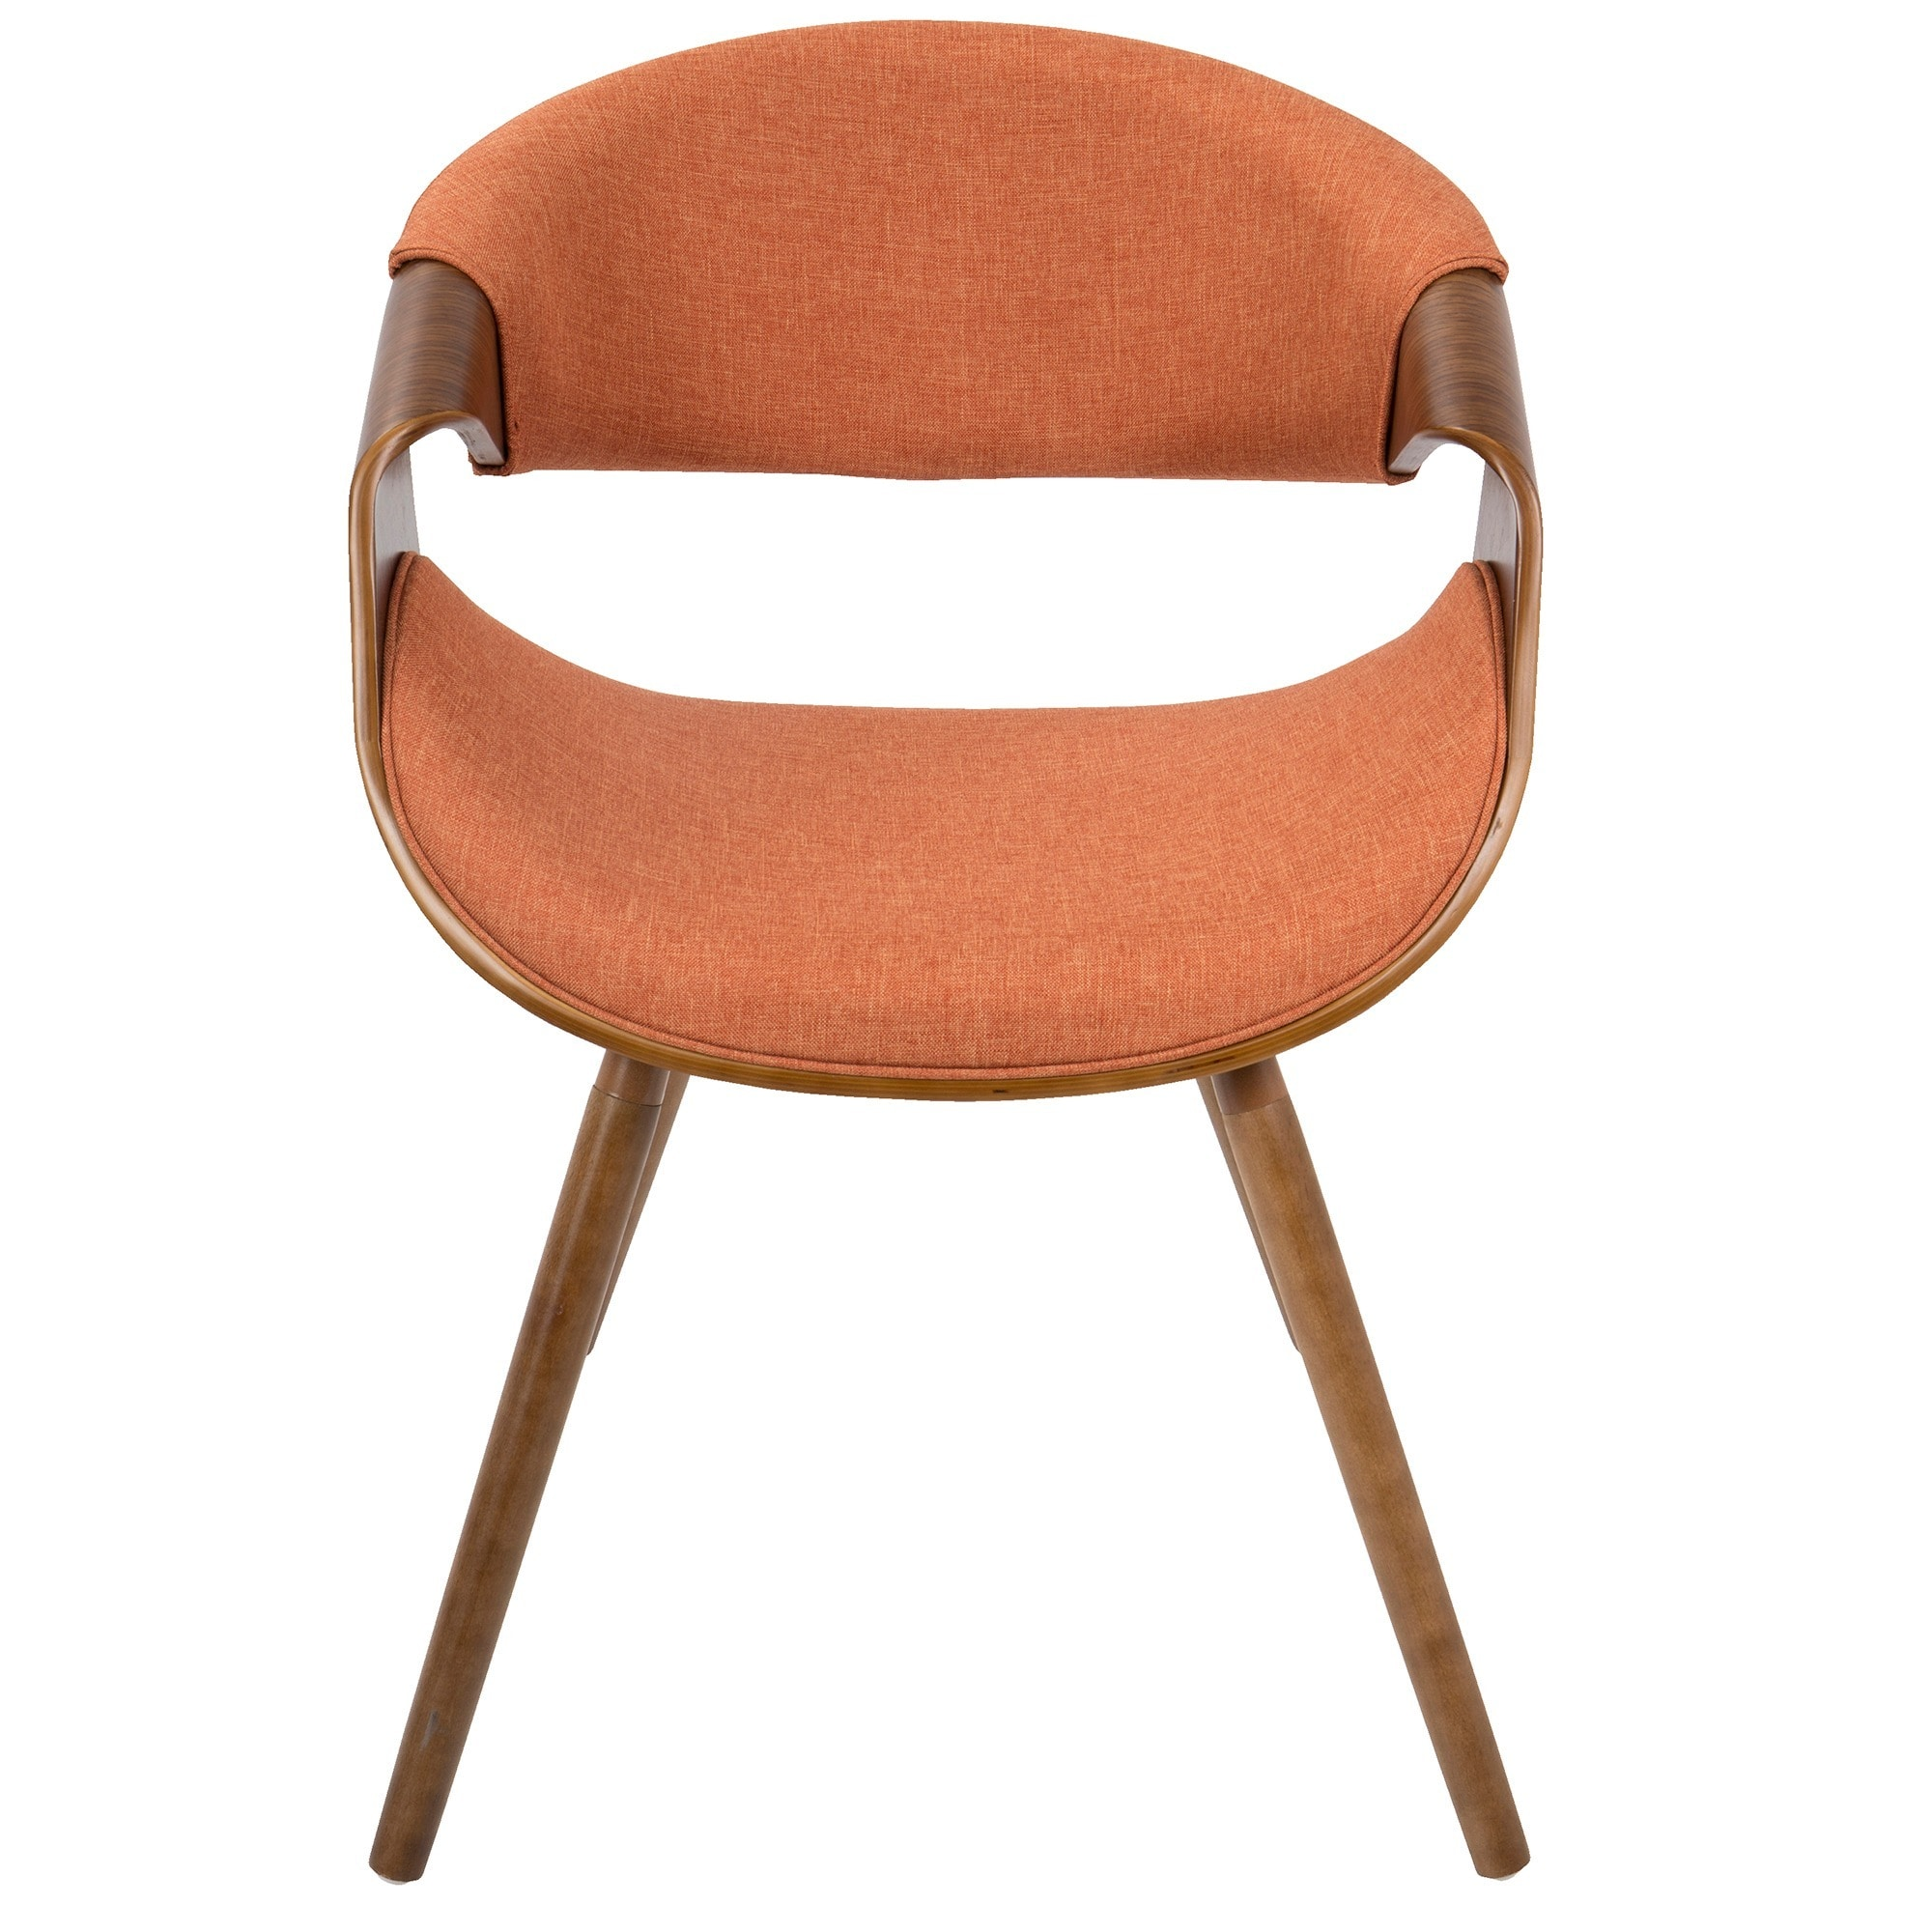 Carson Carrington Visby Mid Century Modern Walnut Wood Chair   Free  Shipping Today   Overstock   18343309